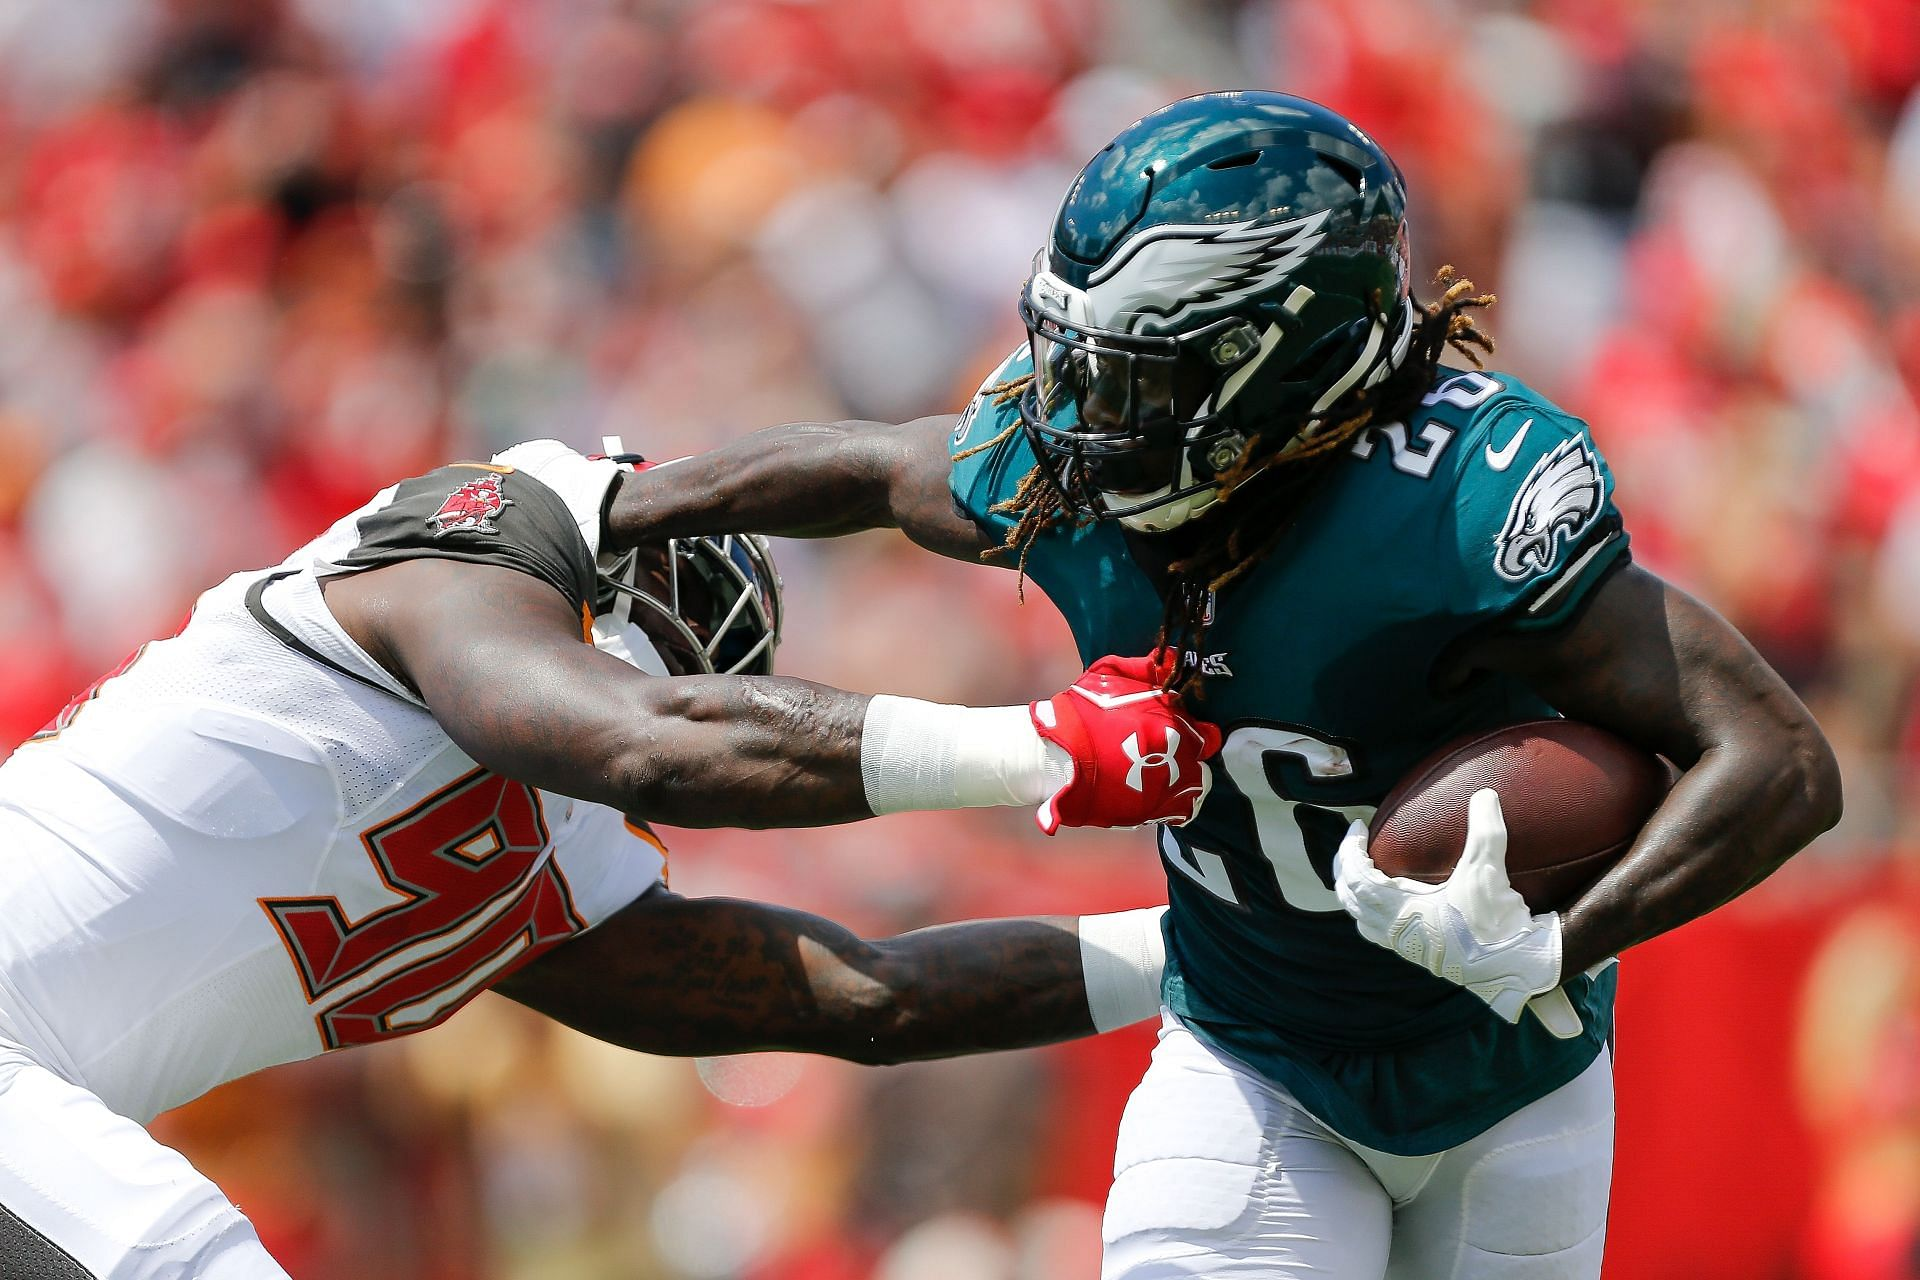 Philadelphia Eagles face the Tampa Bay Buccaneers on Thursday night